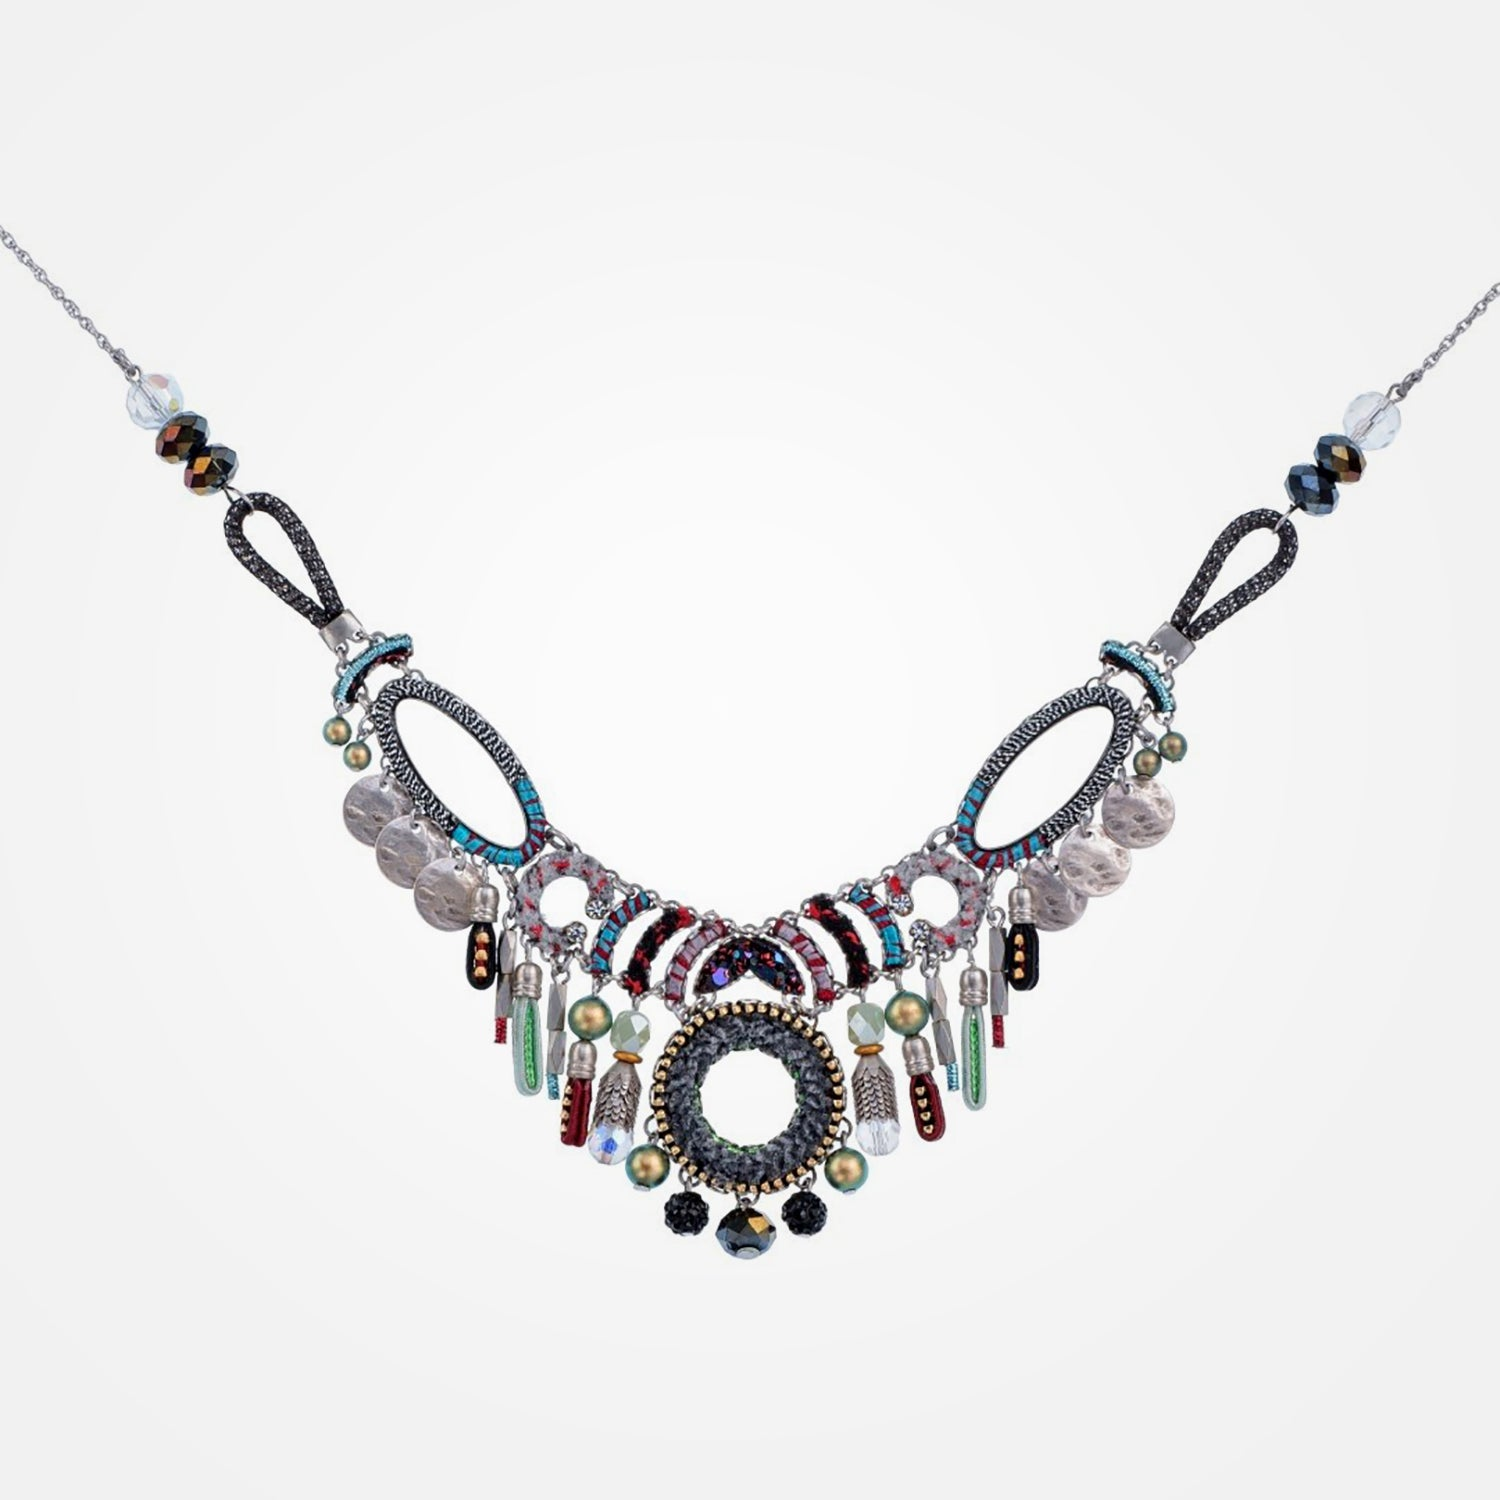 Handmade Ocean Drift Aurora Necklace by JAI